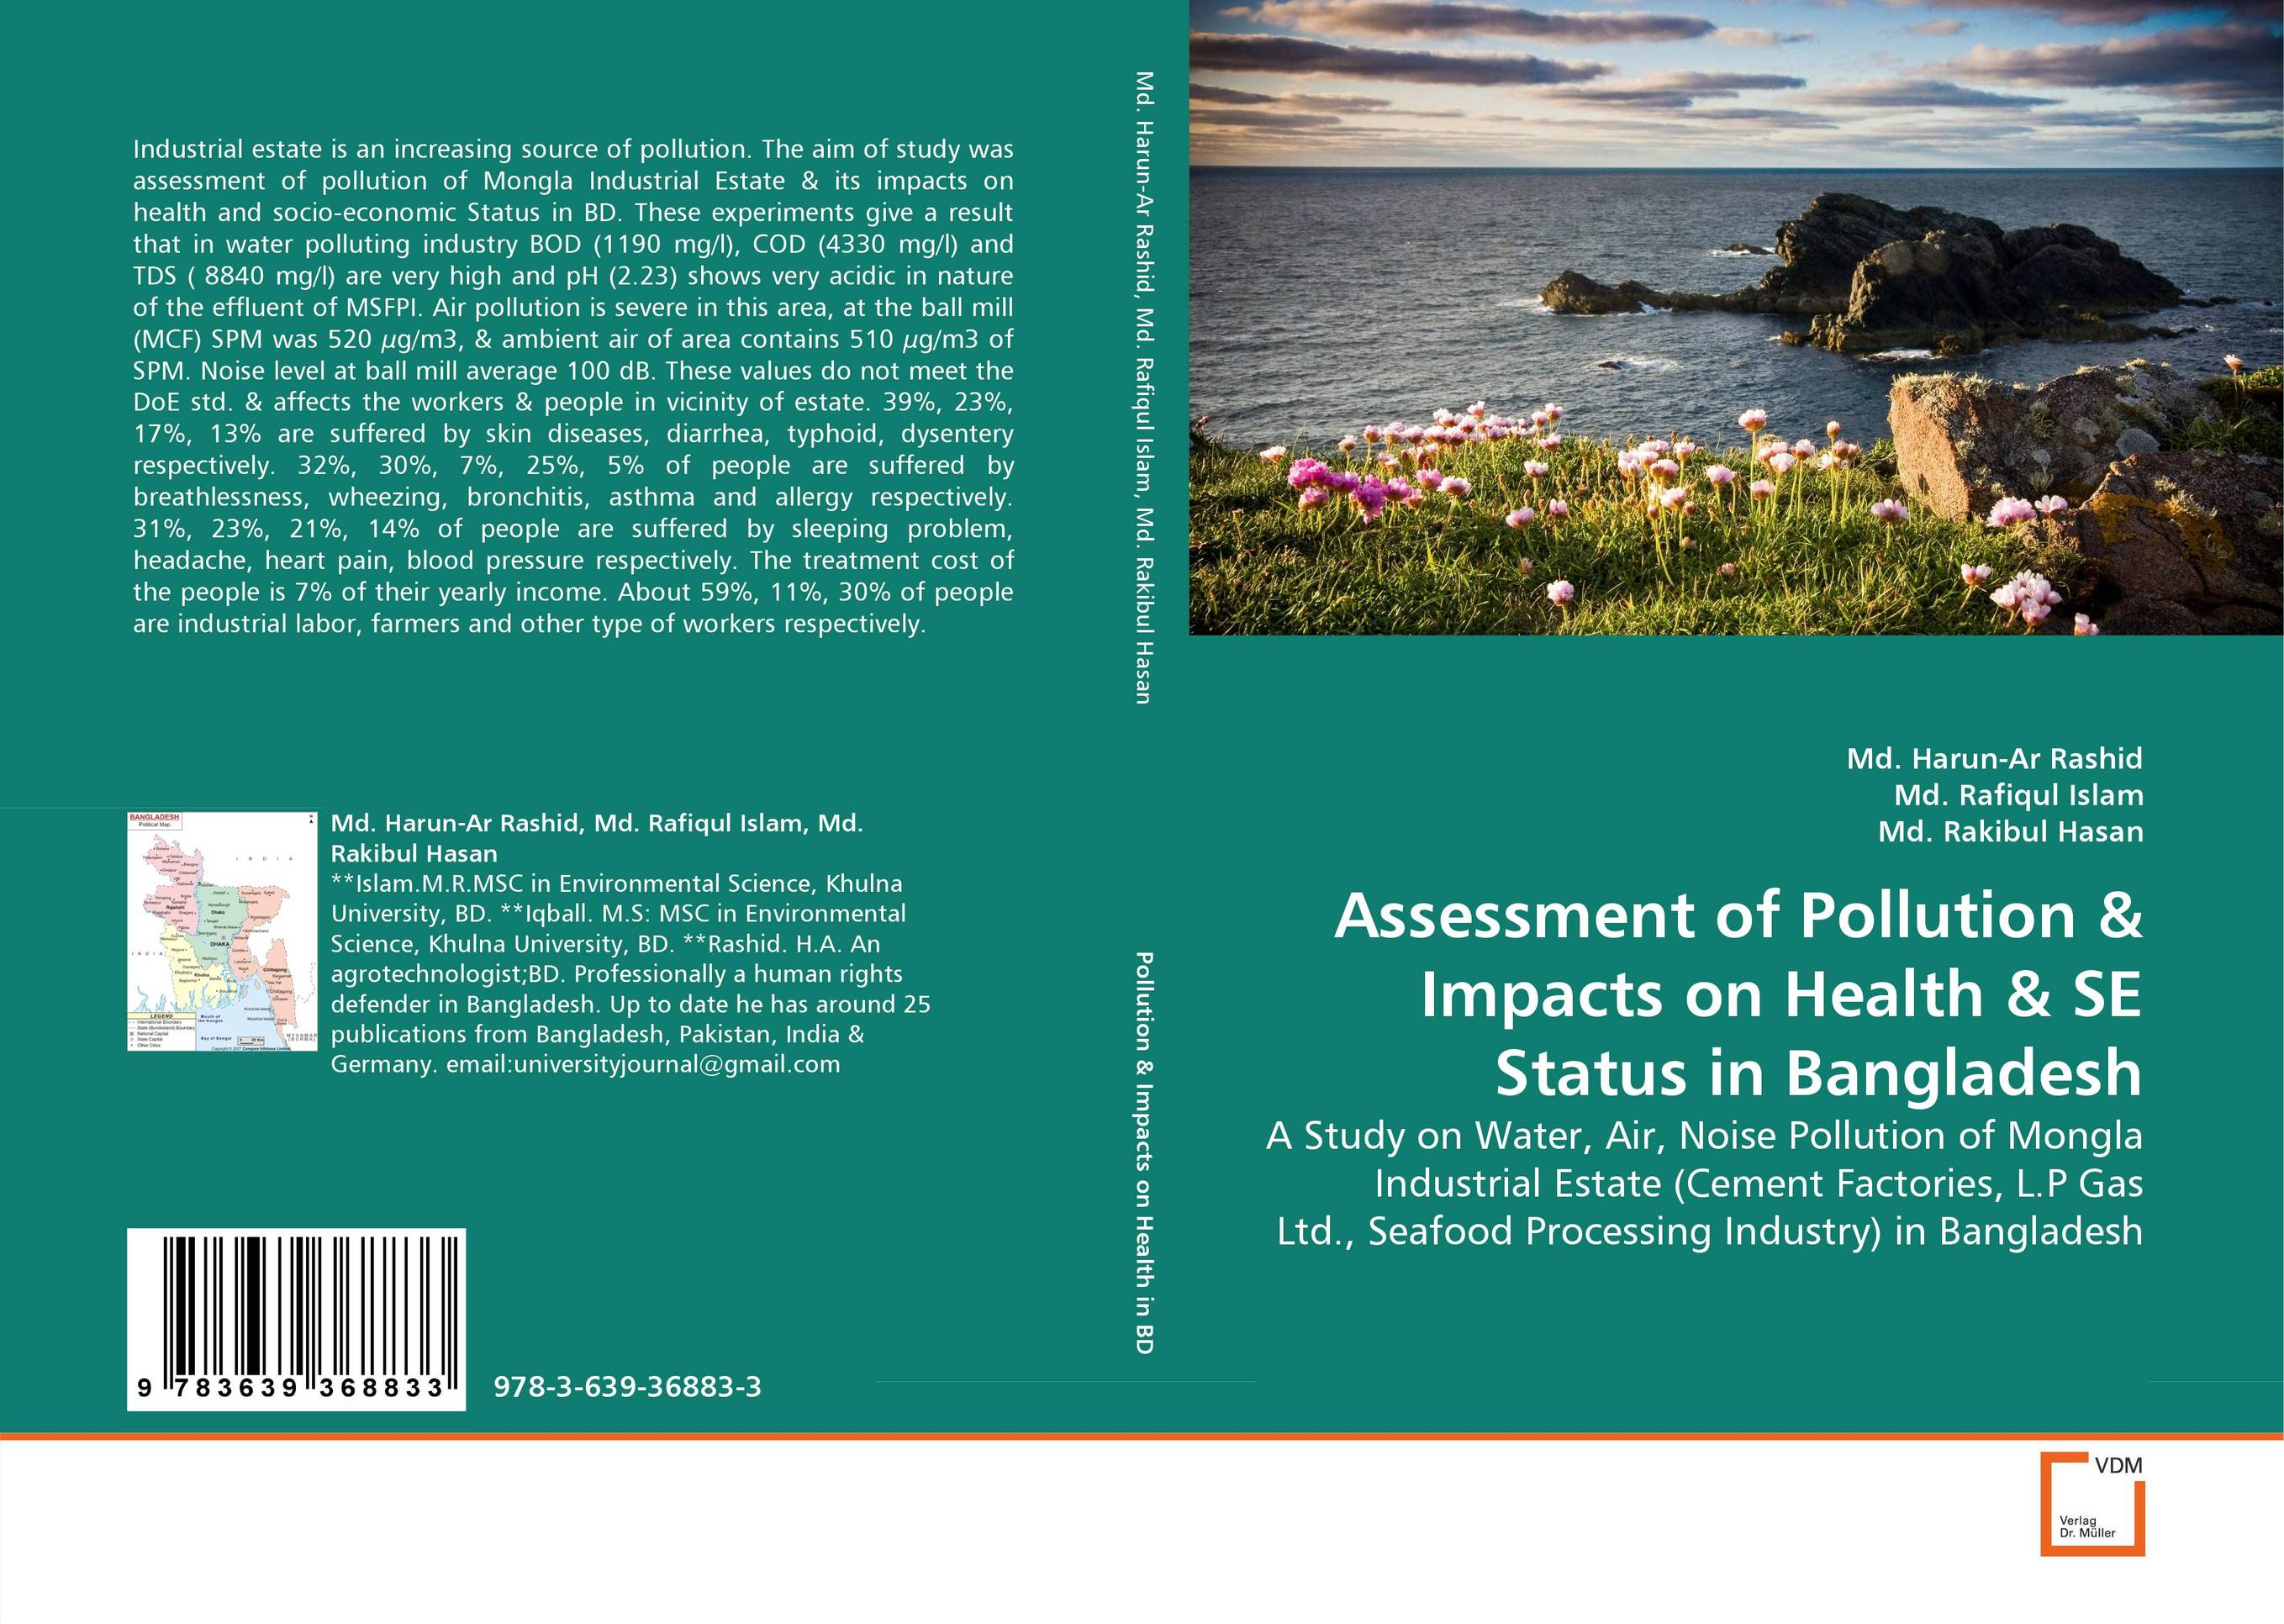 Assessment of Pollution & Impacts on Health & SE Status in  Bangladesh k mukerji mukerji assessment of delinquency – an examinati on of personality